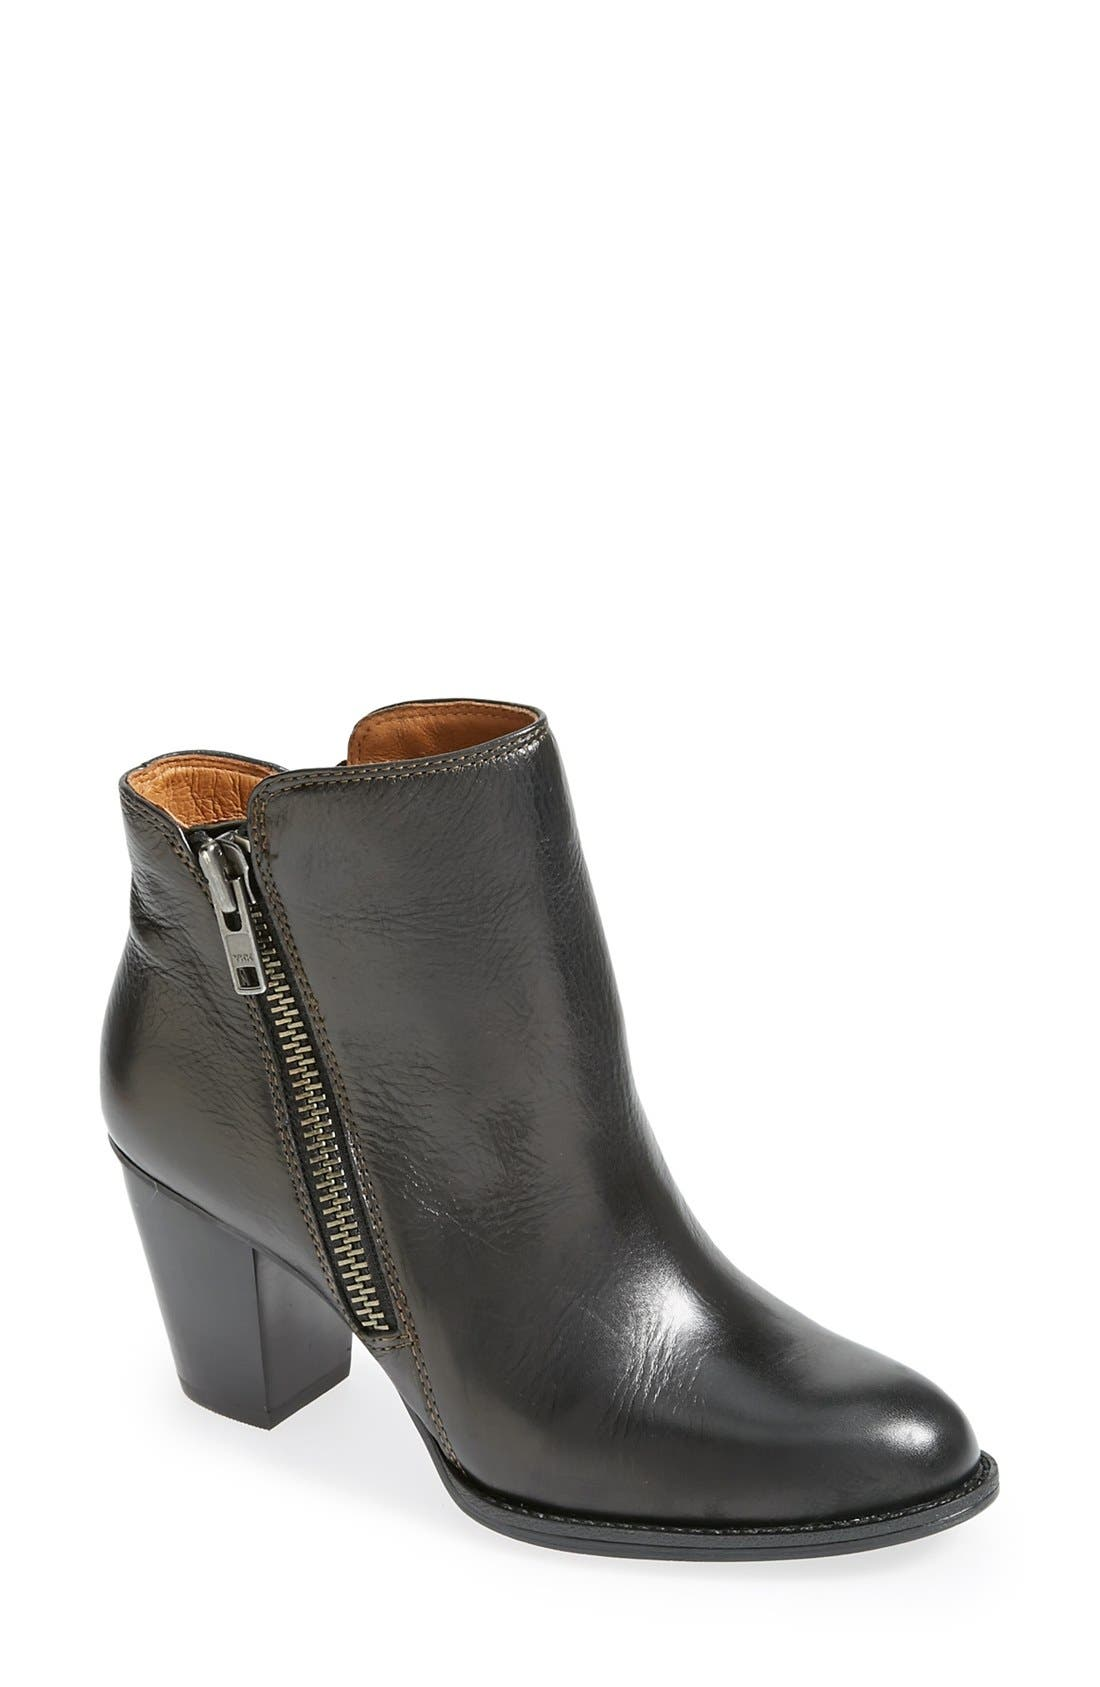 'Wera' Leather Bootie,                             Main thumbnail 1, color,                             001